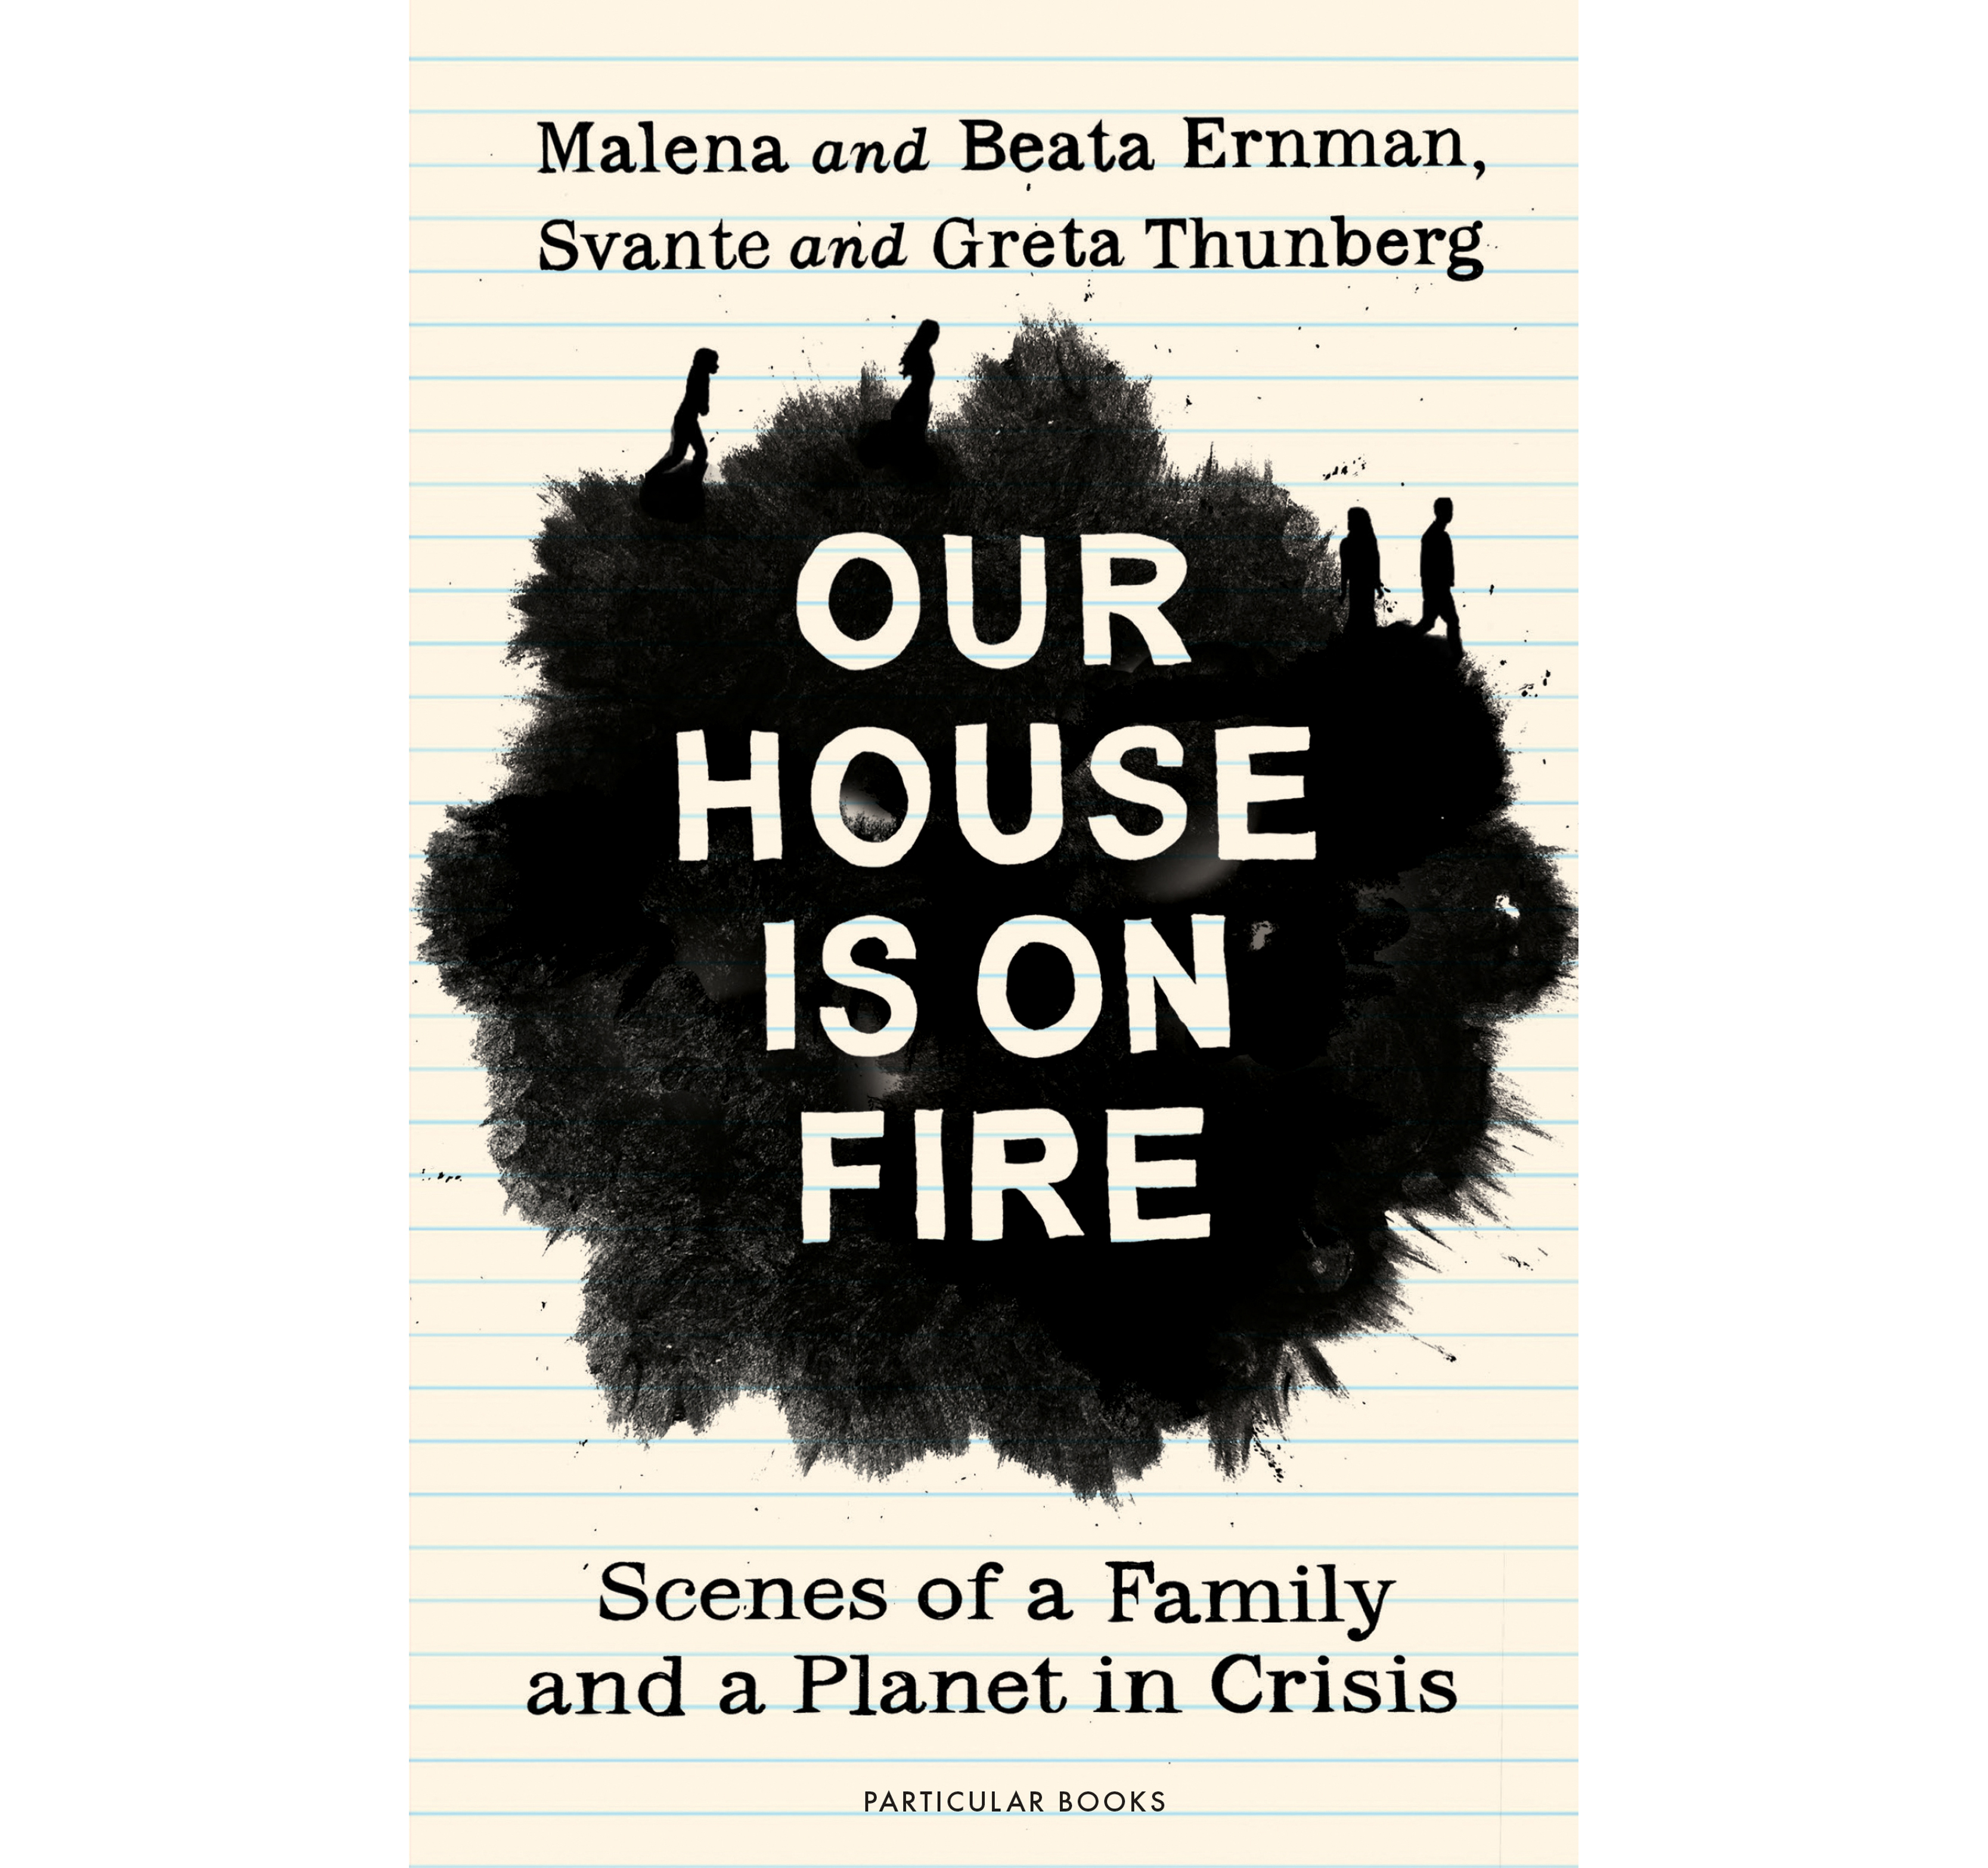 Our House Is On Fire: Scenes of a Family and a Planet in Crisis by Malena and Beata Ernman, Svante and Greta Thunberg (Particular Books/PA)